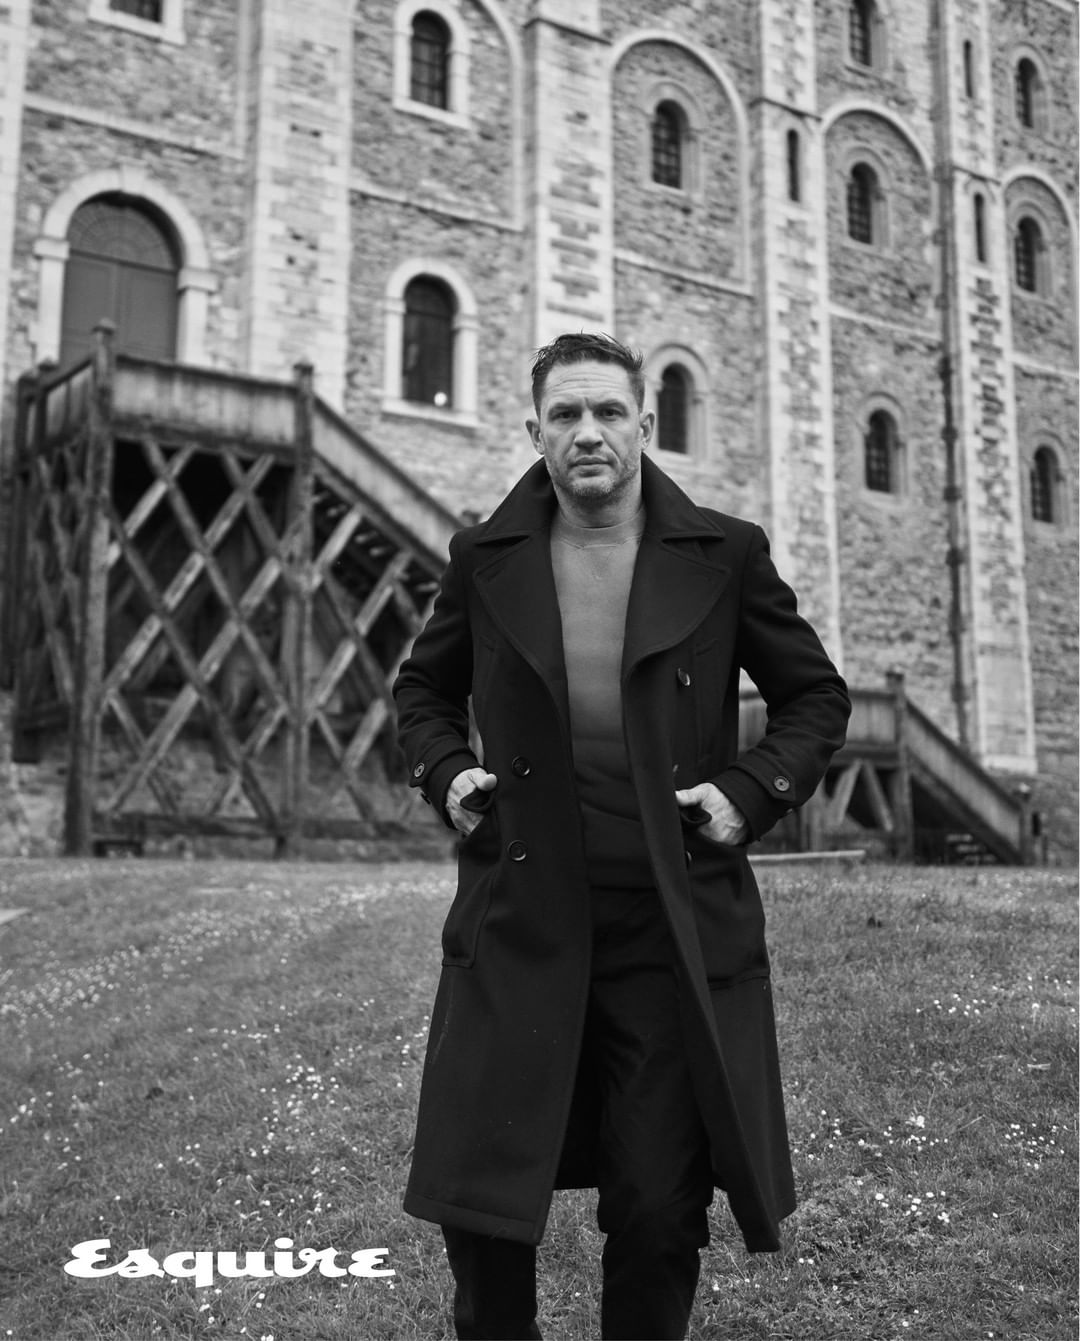 Happy Birthday Tom Hardy!  One of the best performers around and a sexiest man alive.